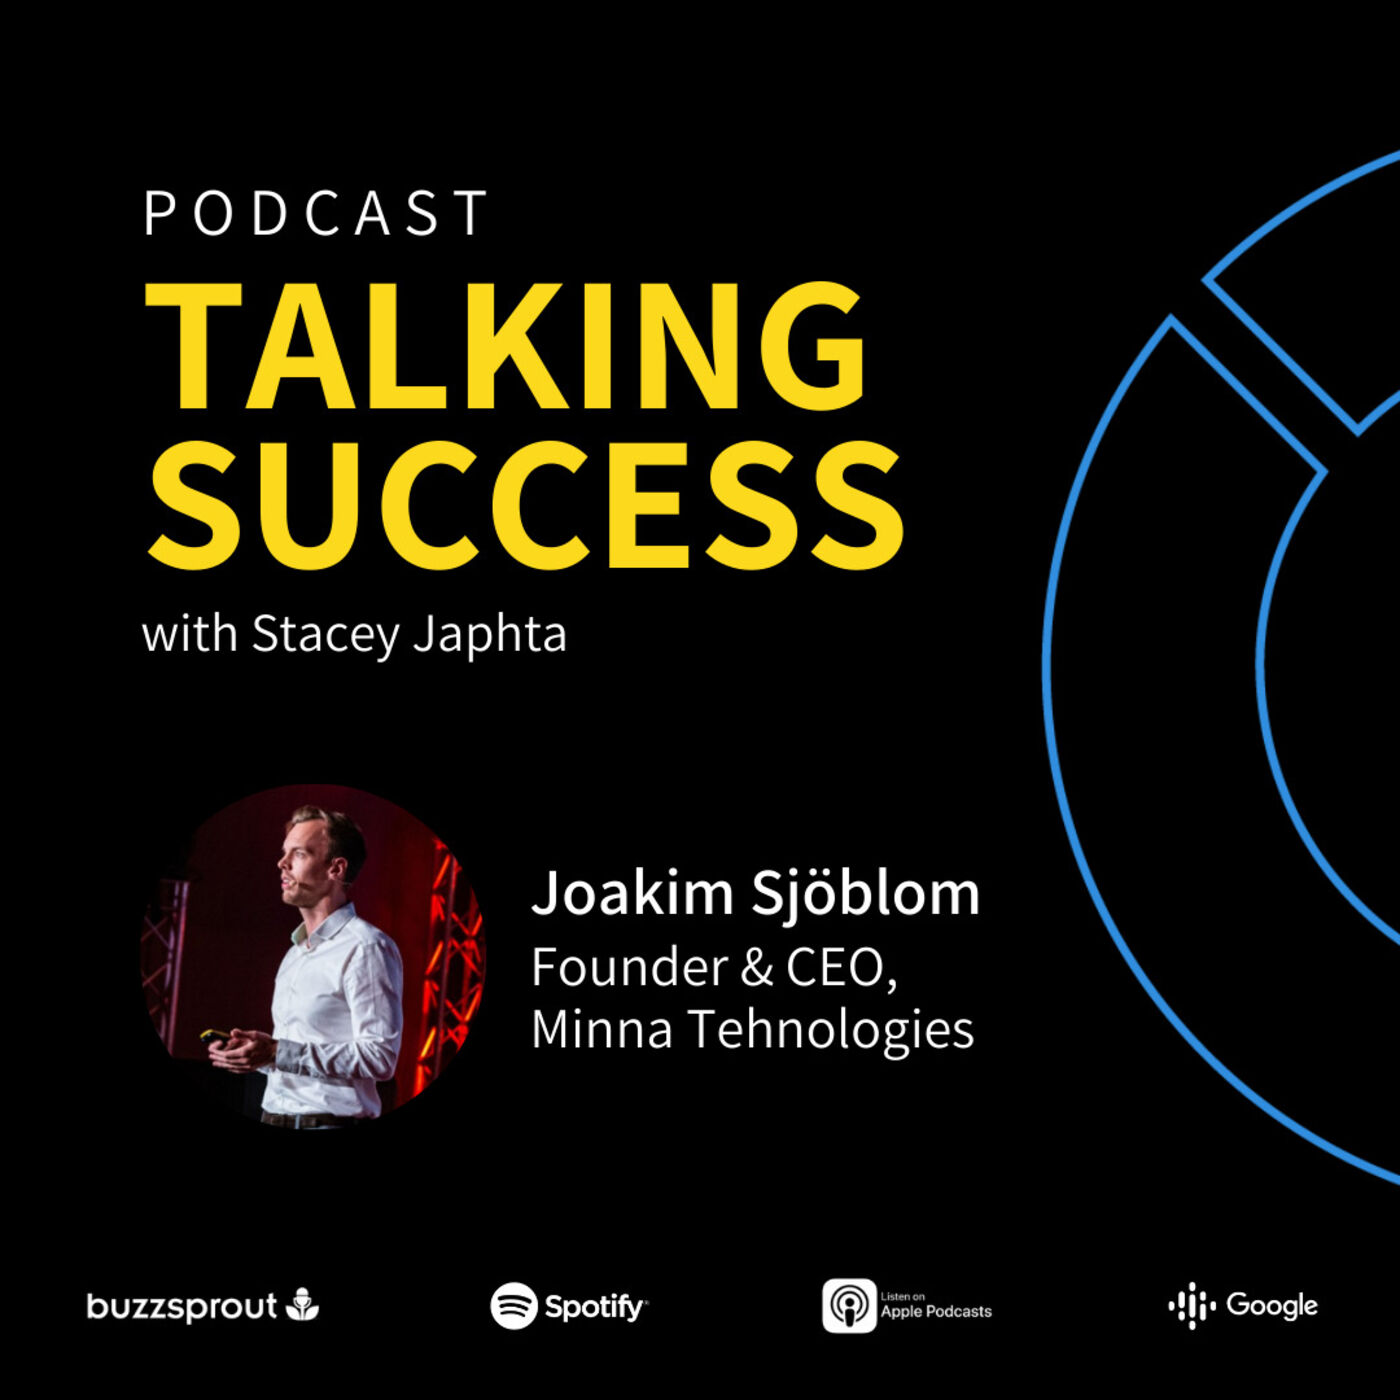 Joakim Sjöblom, CEO & Founder of Minna Technologies - All things FinTech, how to get your ideas in front of banks, & tips on working with the banking industry